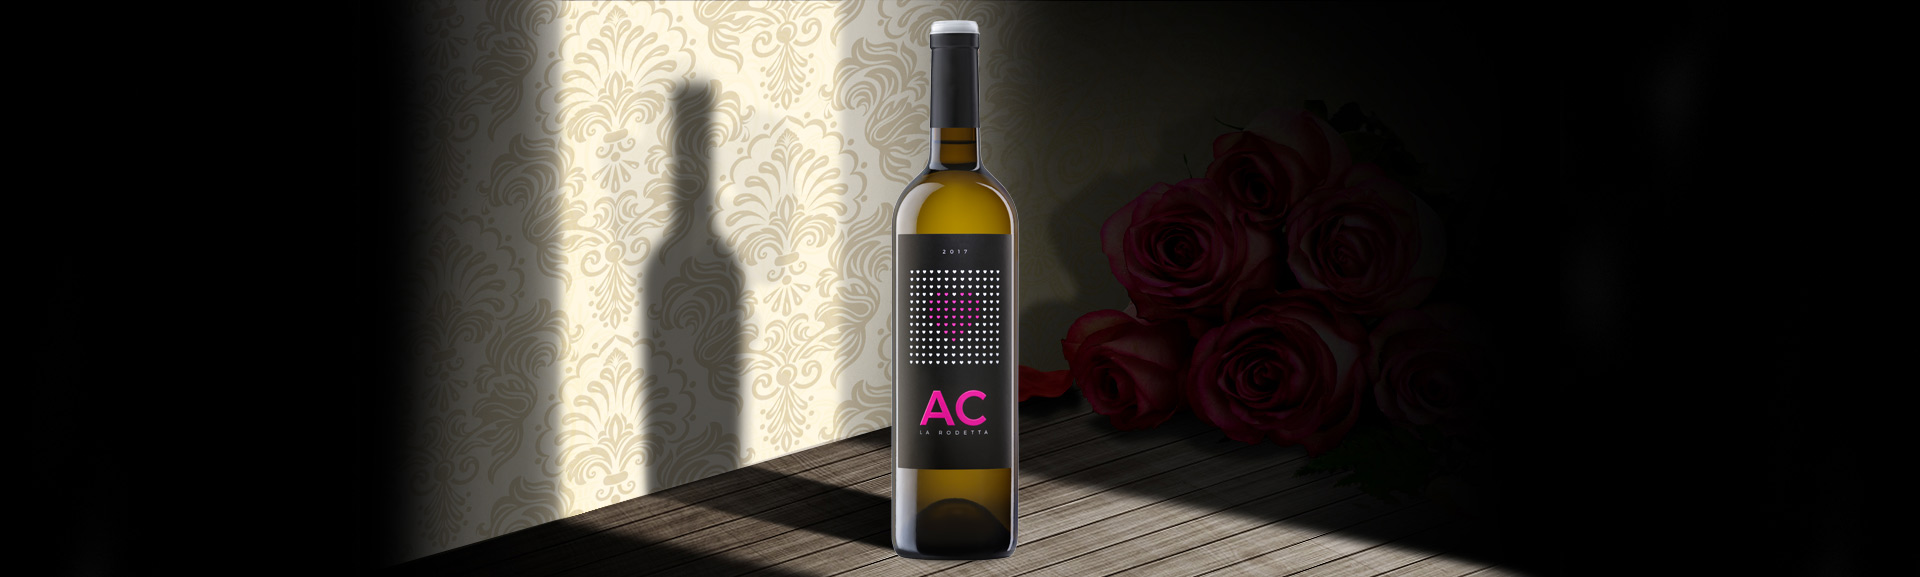 PROMO 6 botellas AC